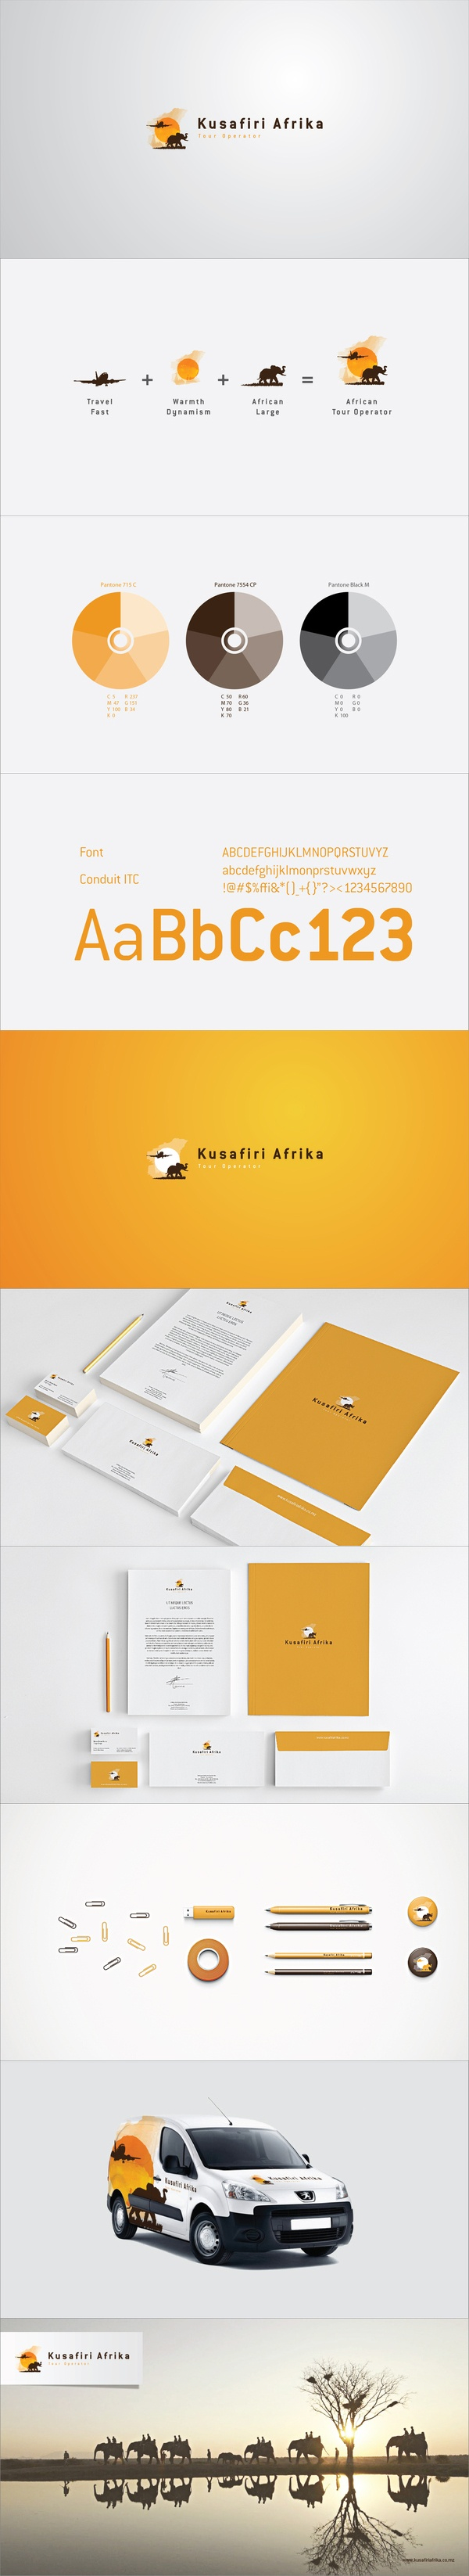 """Kusafiri Afrika is a young and upcoming Mozambican tour operator. Its team is composed by young, dynamic and active professionals who bring personalized tour services to their clients. Kusafiri is a swahili word that means """"to travel"""", thus the logo incorporates both elements from Africa and traveling, to portrait not only the company's name but also their activities and values."""